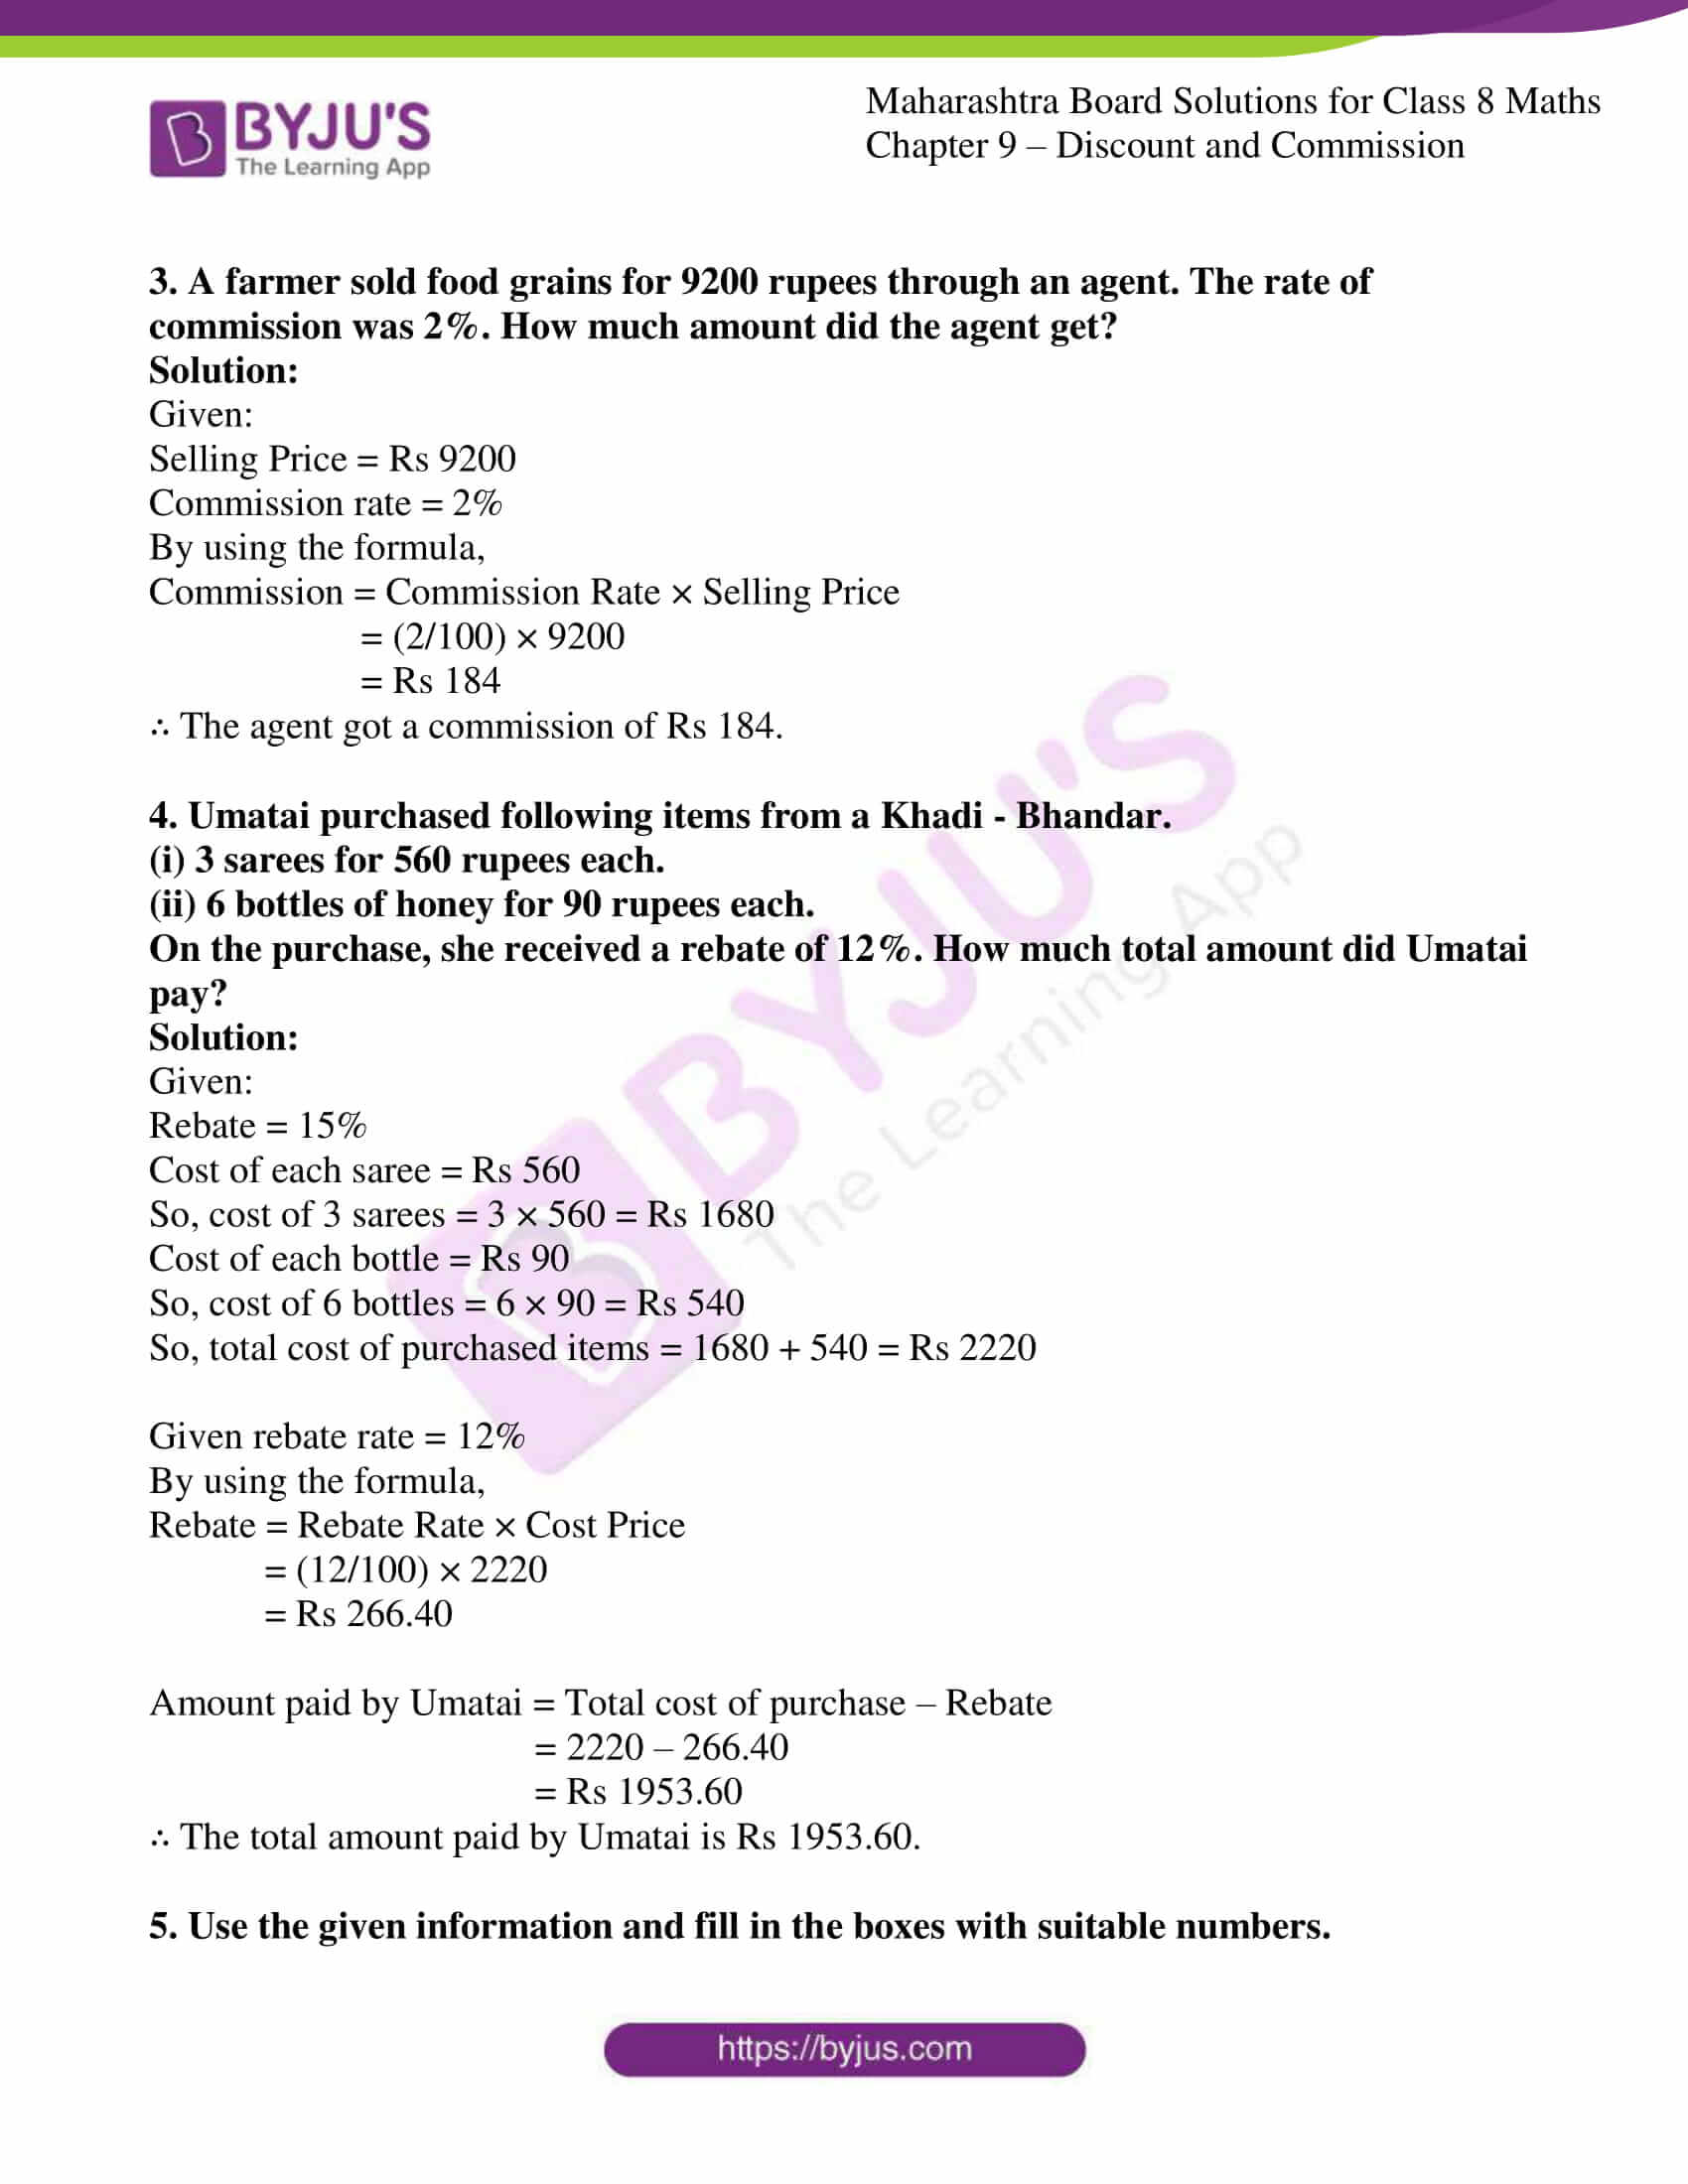 msbshse sol for class 8 maths chapter 9 6